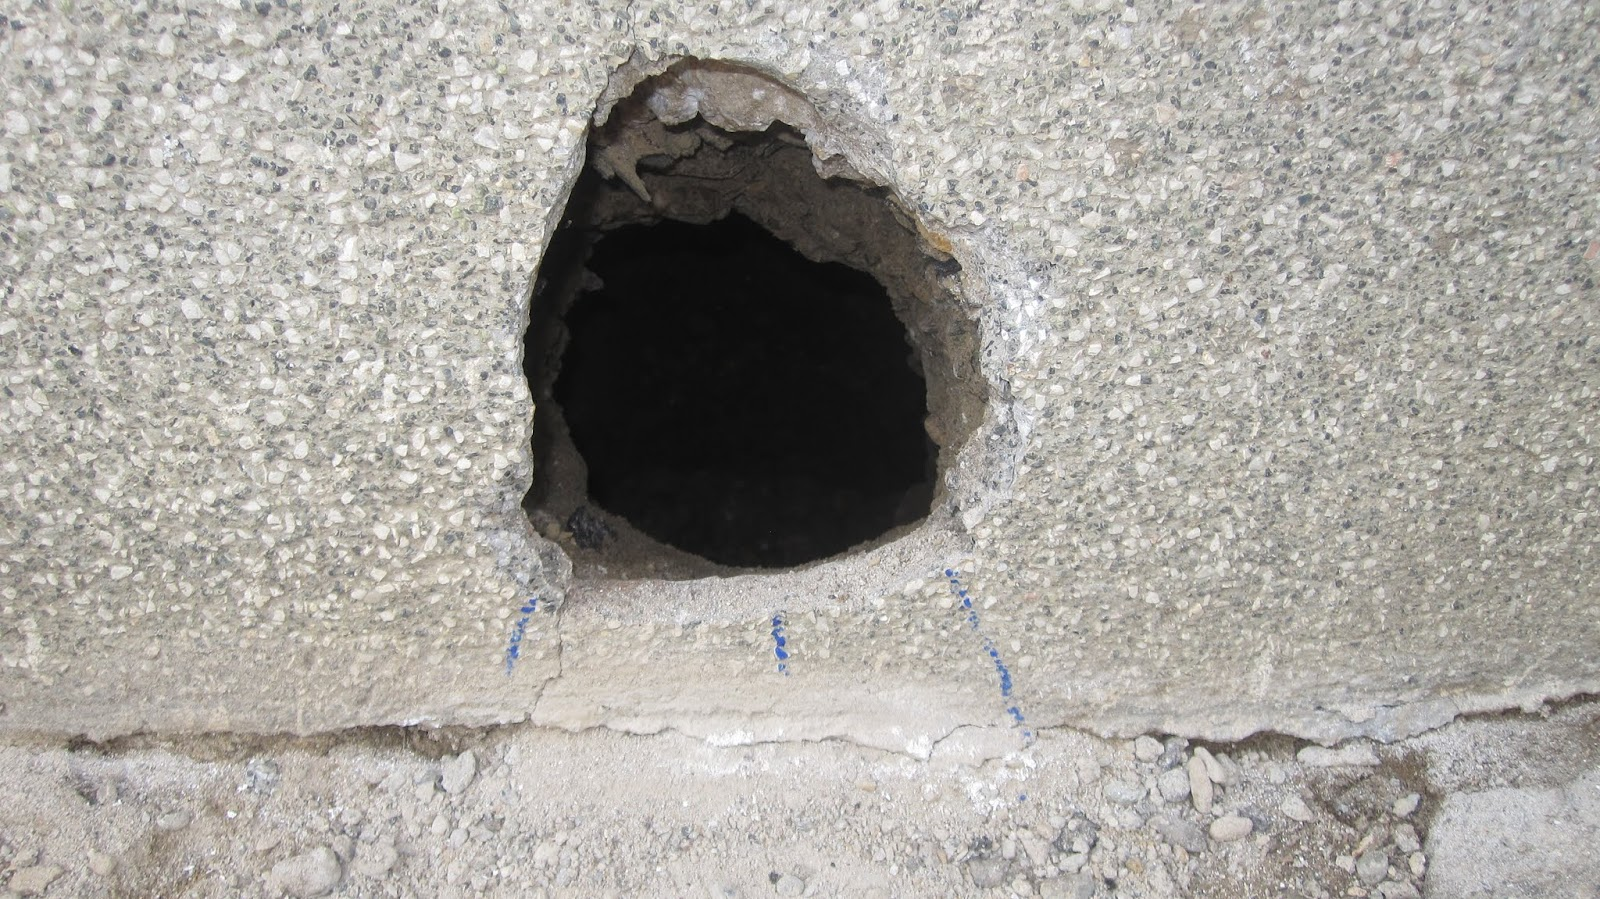 Hole In Concrete Wall : The renovation upwards and onwards downwards too i